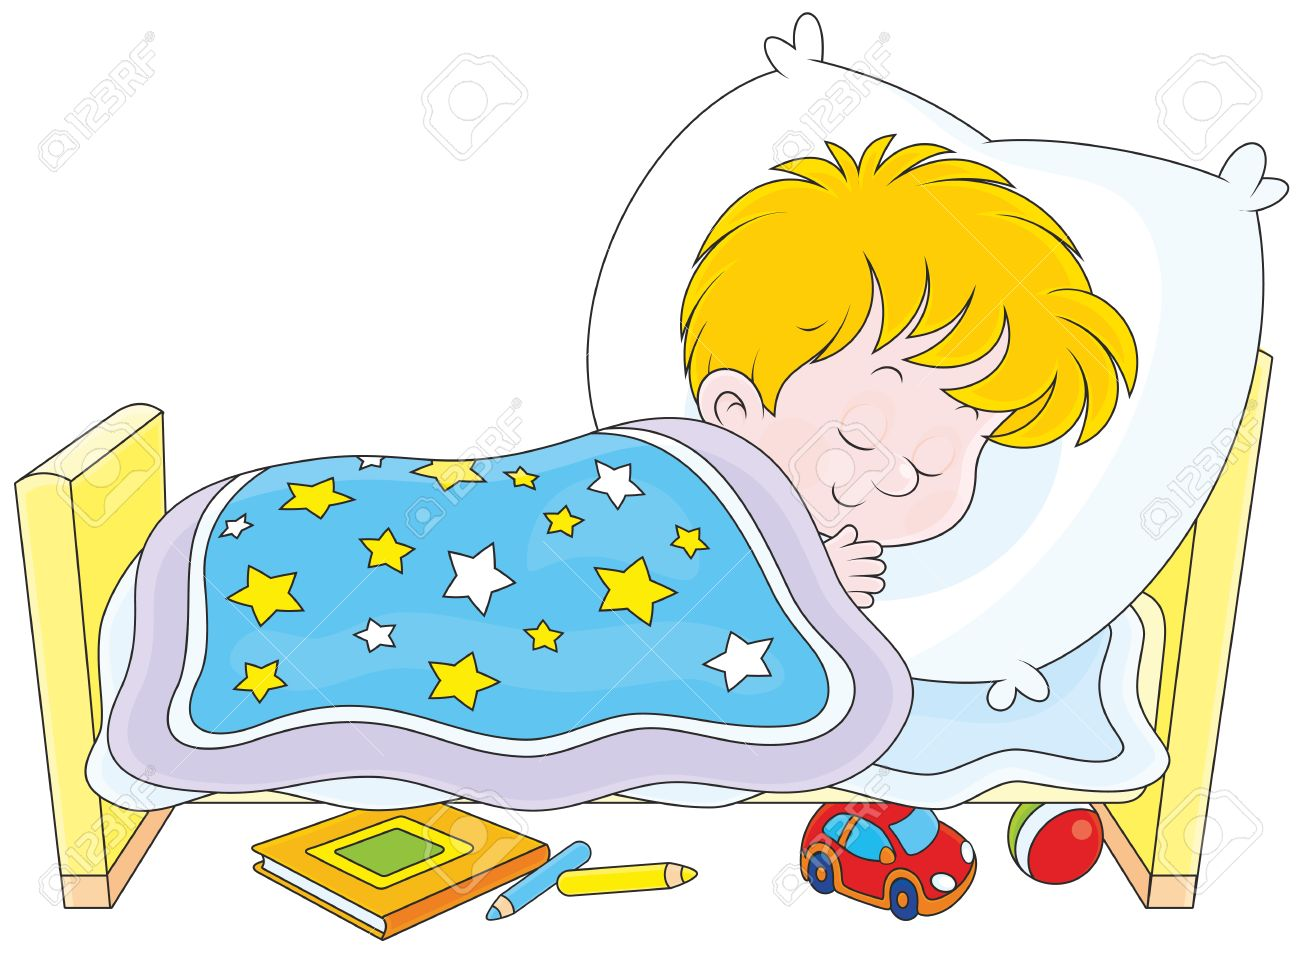 Clipart kid sleeping svg freeuse library Sleeping kid clipart 4 » Clipart Station svg freeuse library